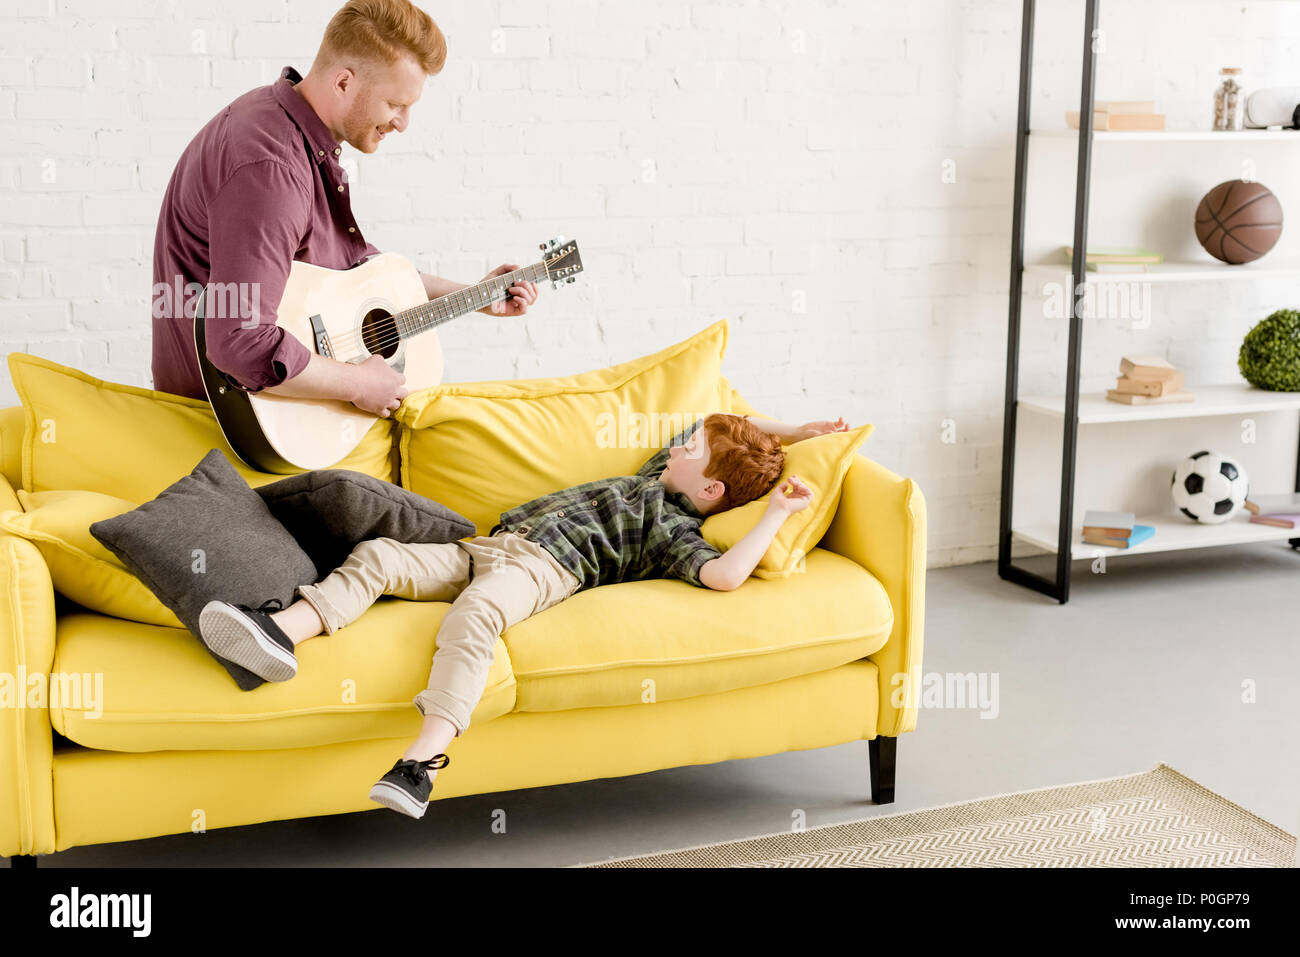 smiling father playing guitar and cute little son lying on couch Stock Photo